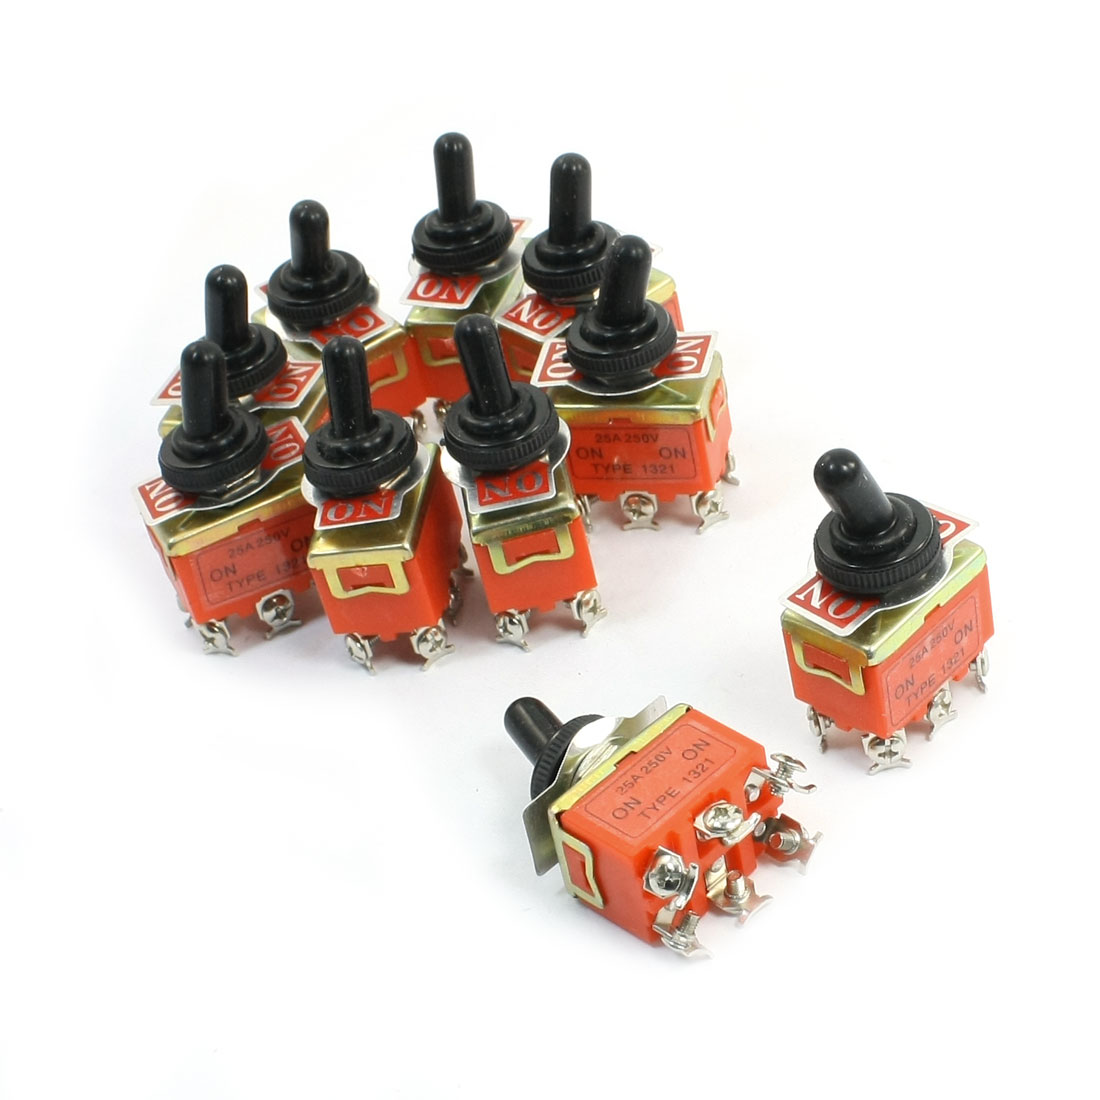 10Pcs Panel Mount DPDT On-On Dual Position Toggle Switch 250V 25A w Cover